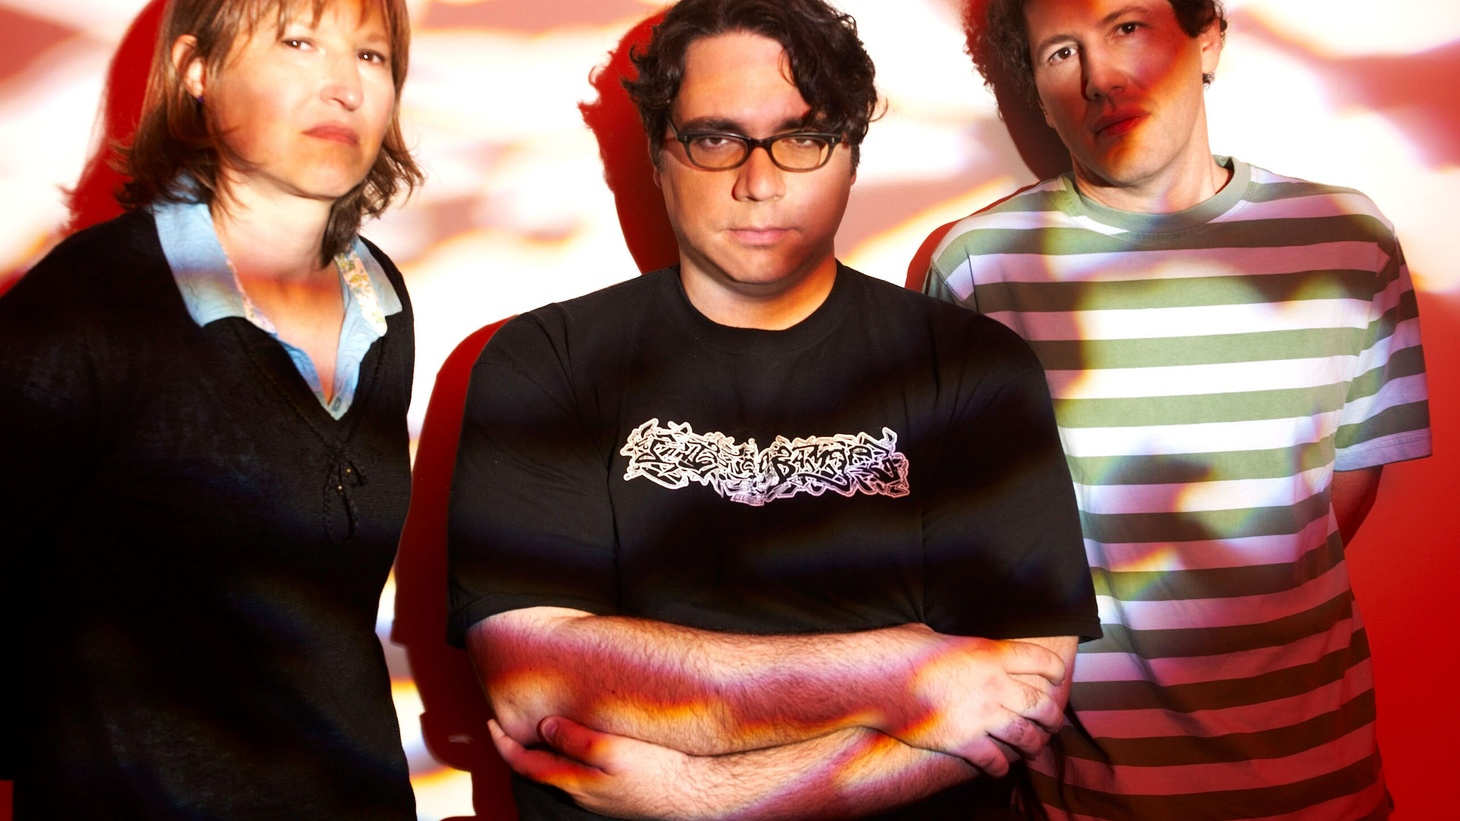 'We would write our songs soft / Then we would try to make them tough.' That's a line from 'Before We Stopped To Think,' a song by the obscure, now-defunct indie-rock band Great Plains, covered by Yo La Tengo on its new album, Stuff Like That There. The choice of song is telling.